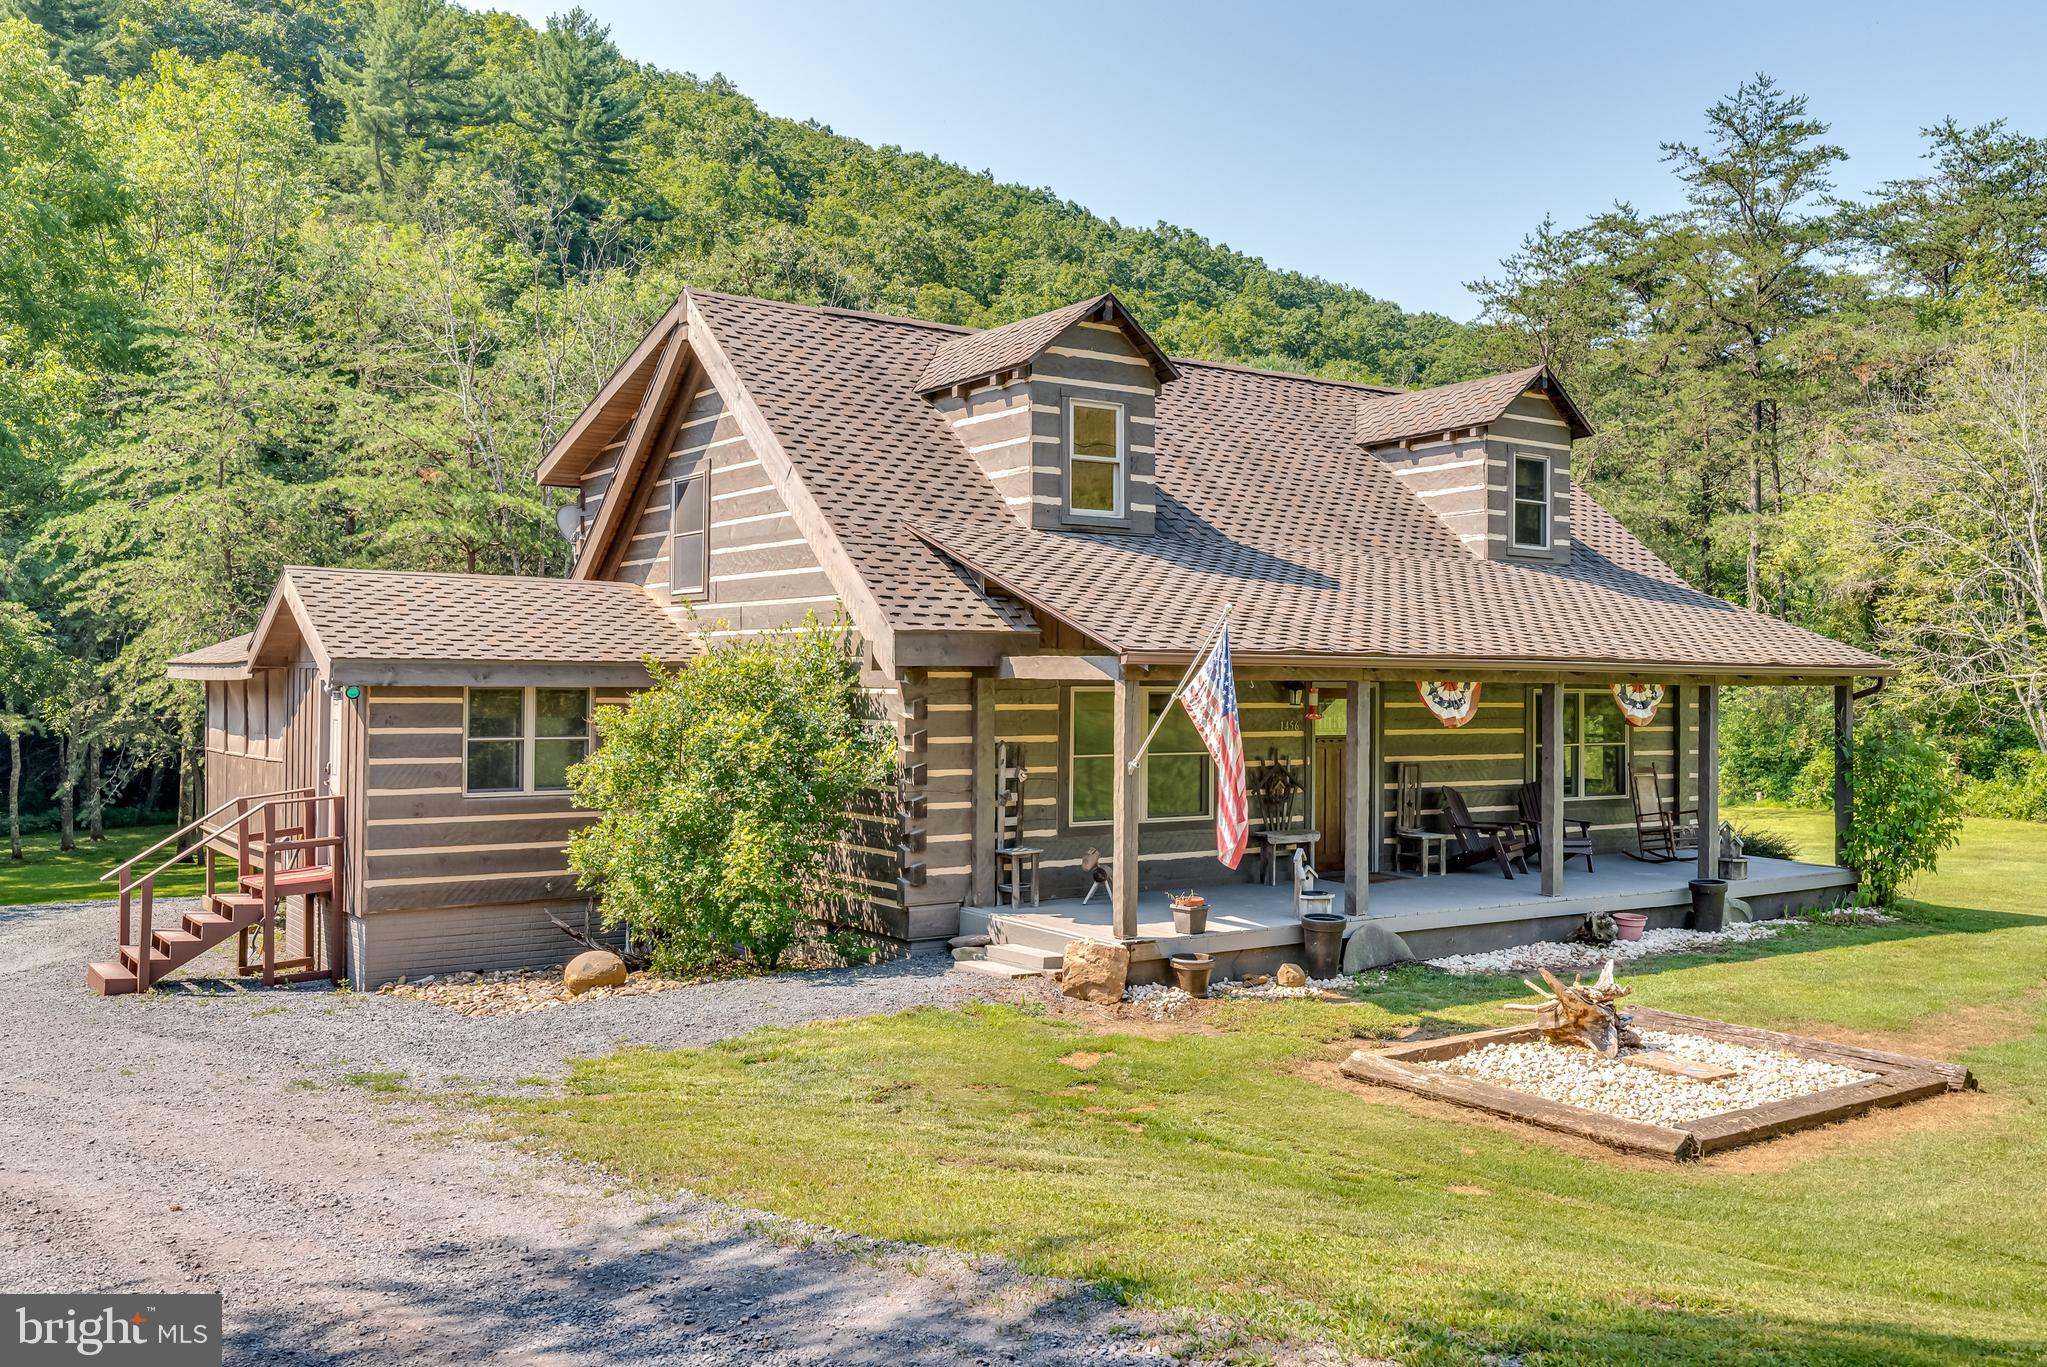 1456 UPPER SKAGGS RUN ROAD, BAKER, WV 26801